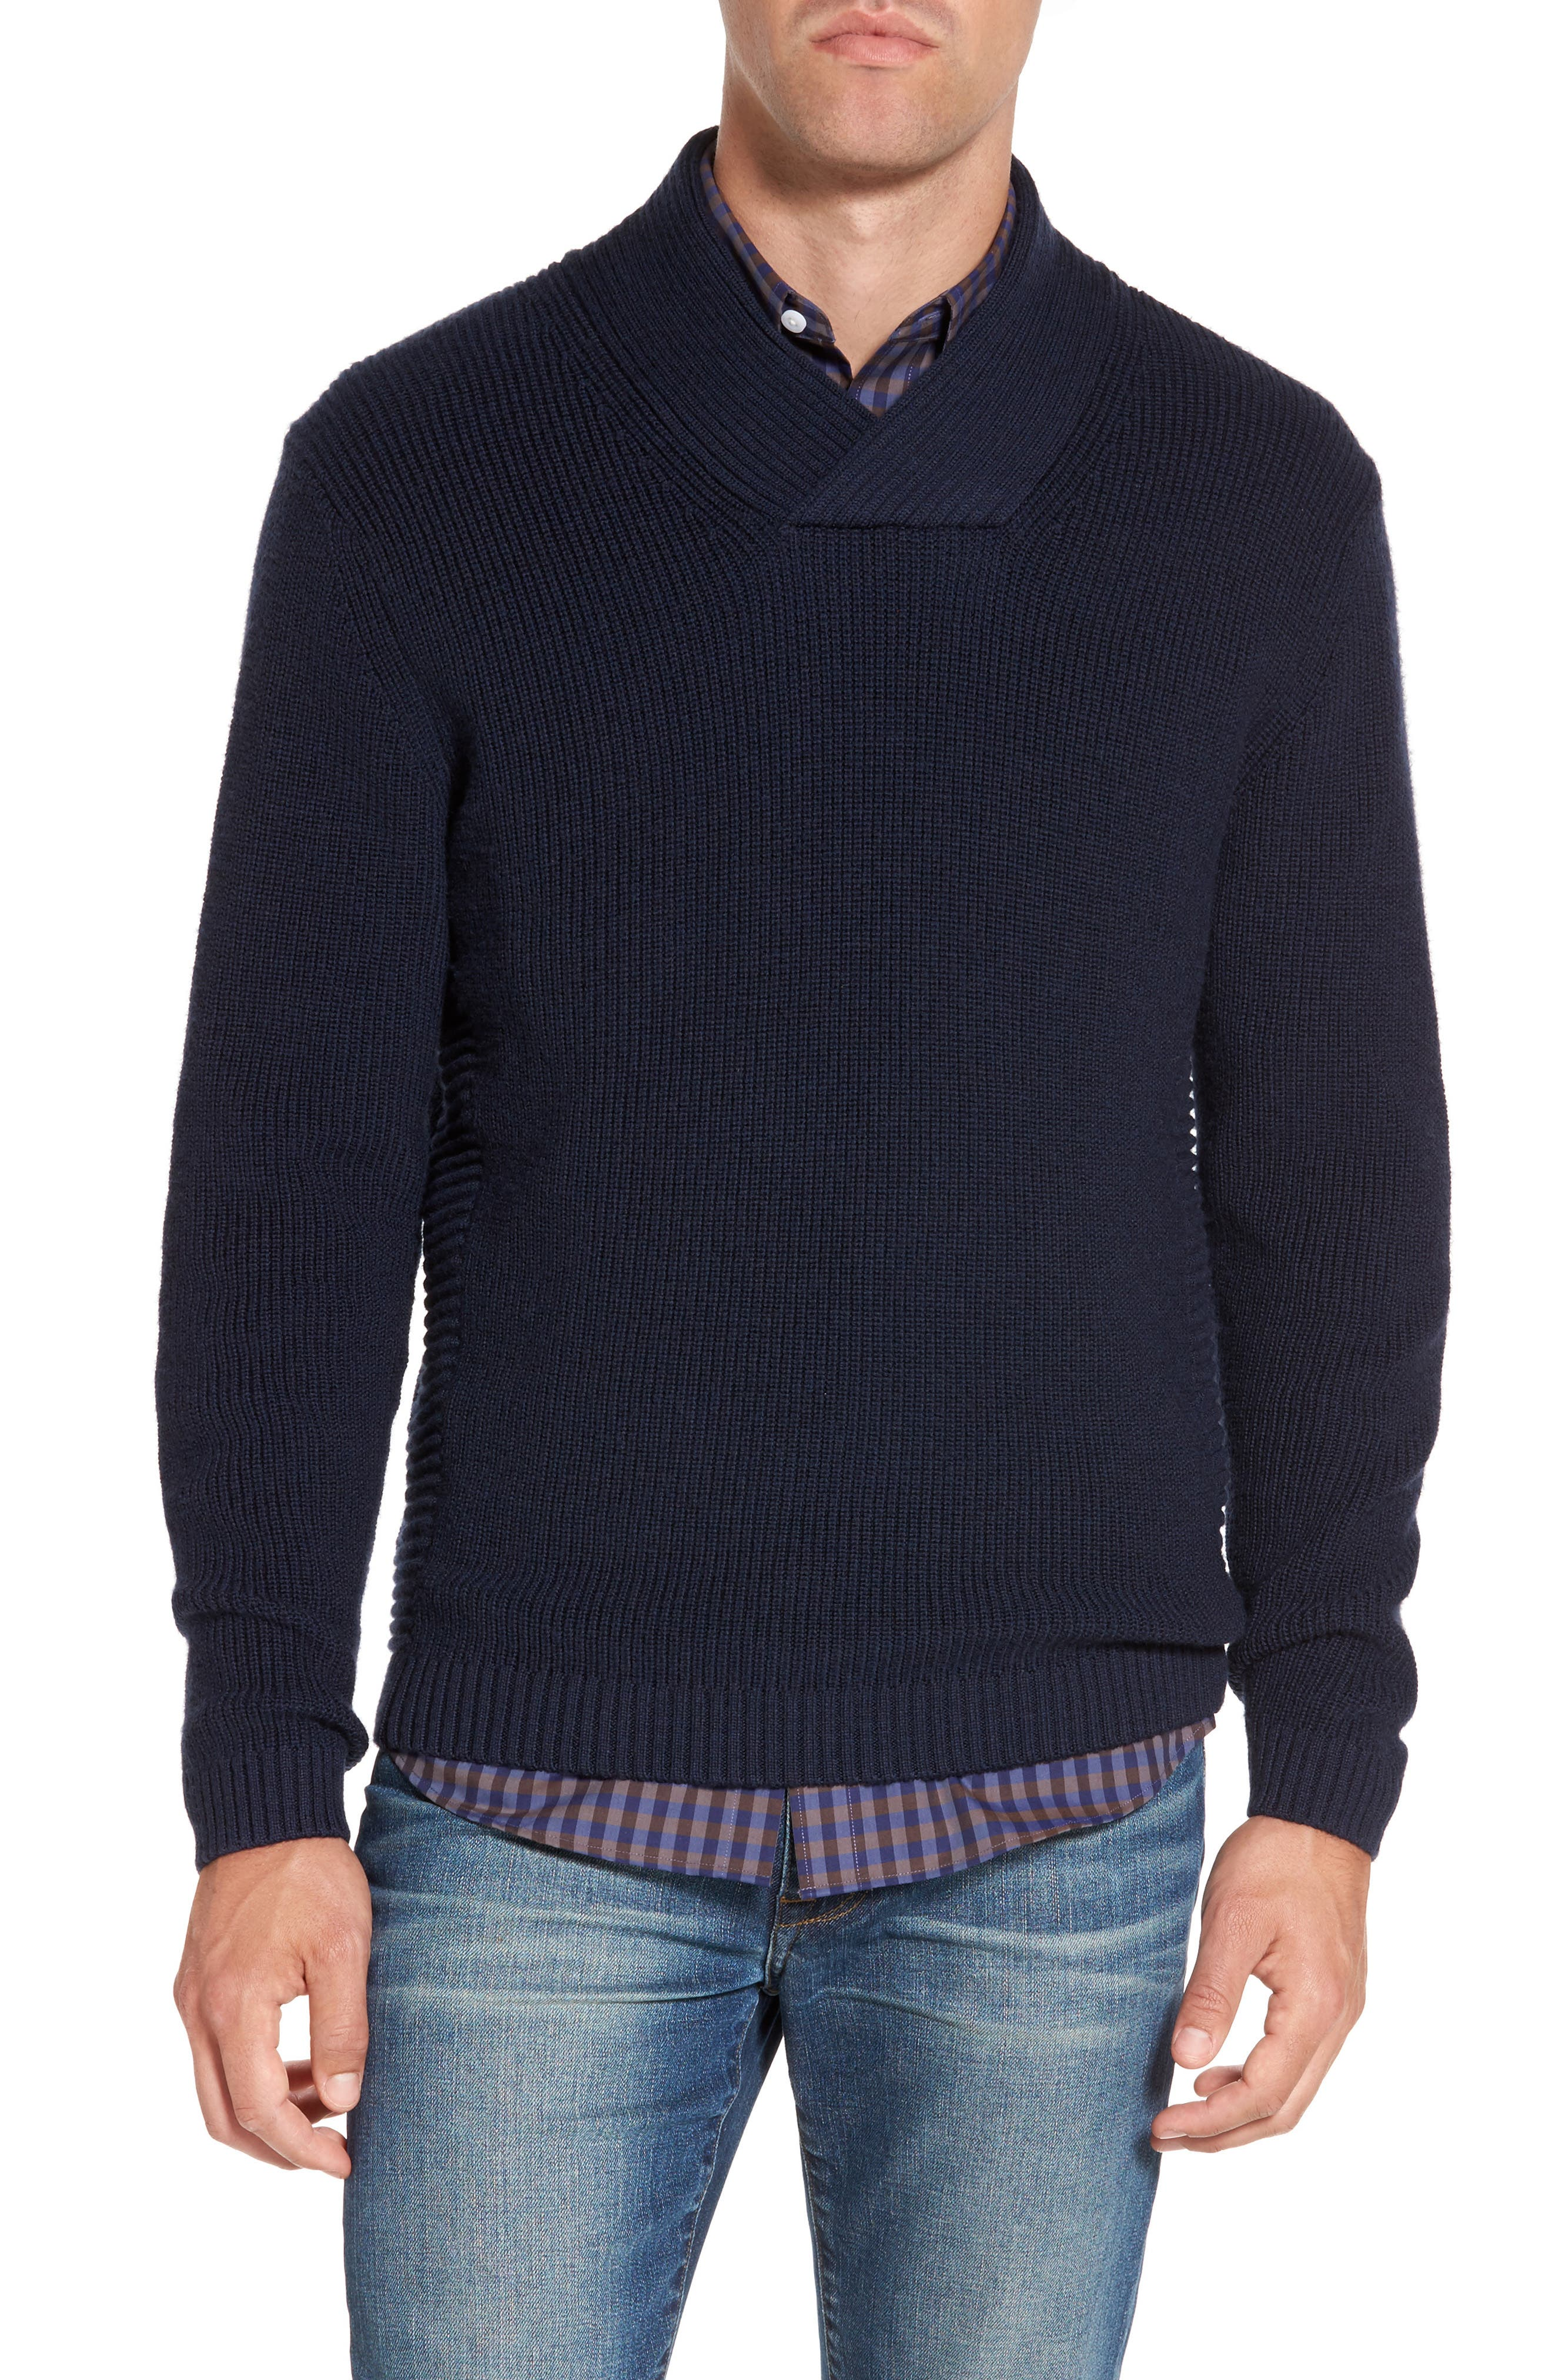 Charlesworth Suede Patch Merino Wool Sweater,                         Main,                         color, 432